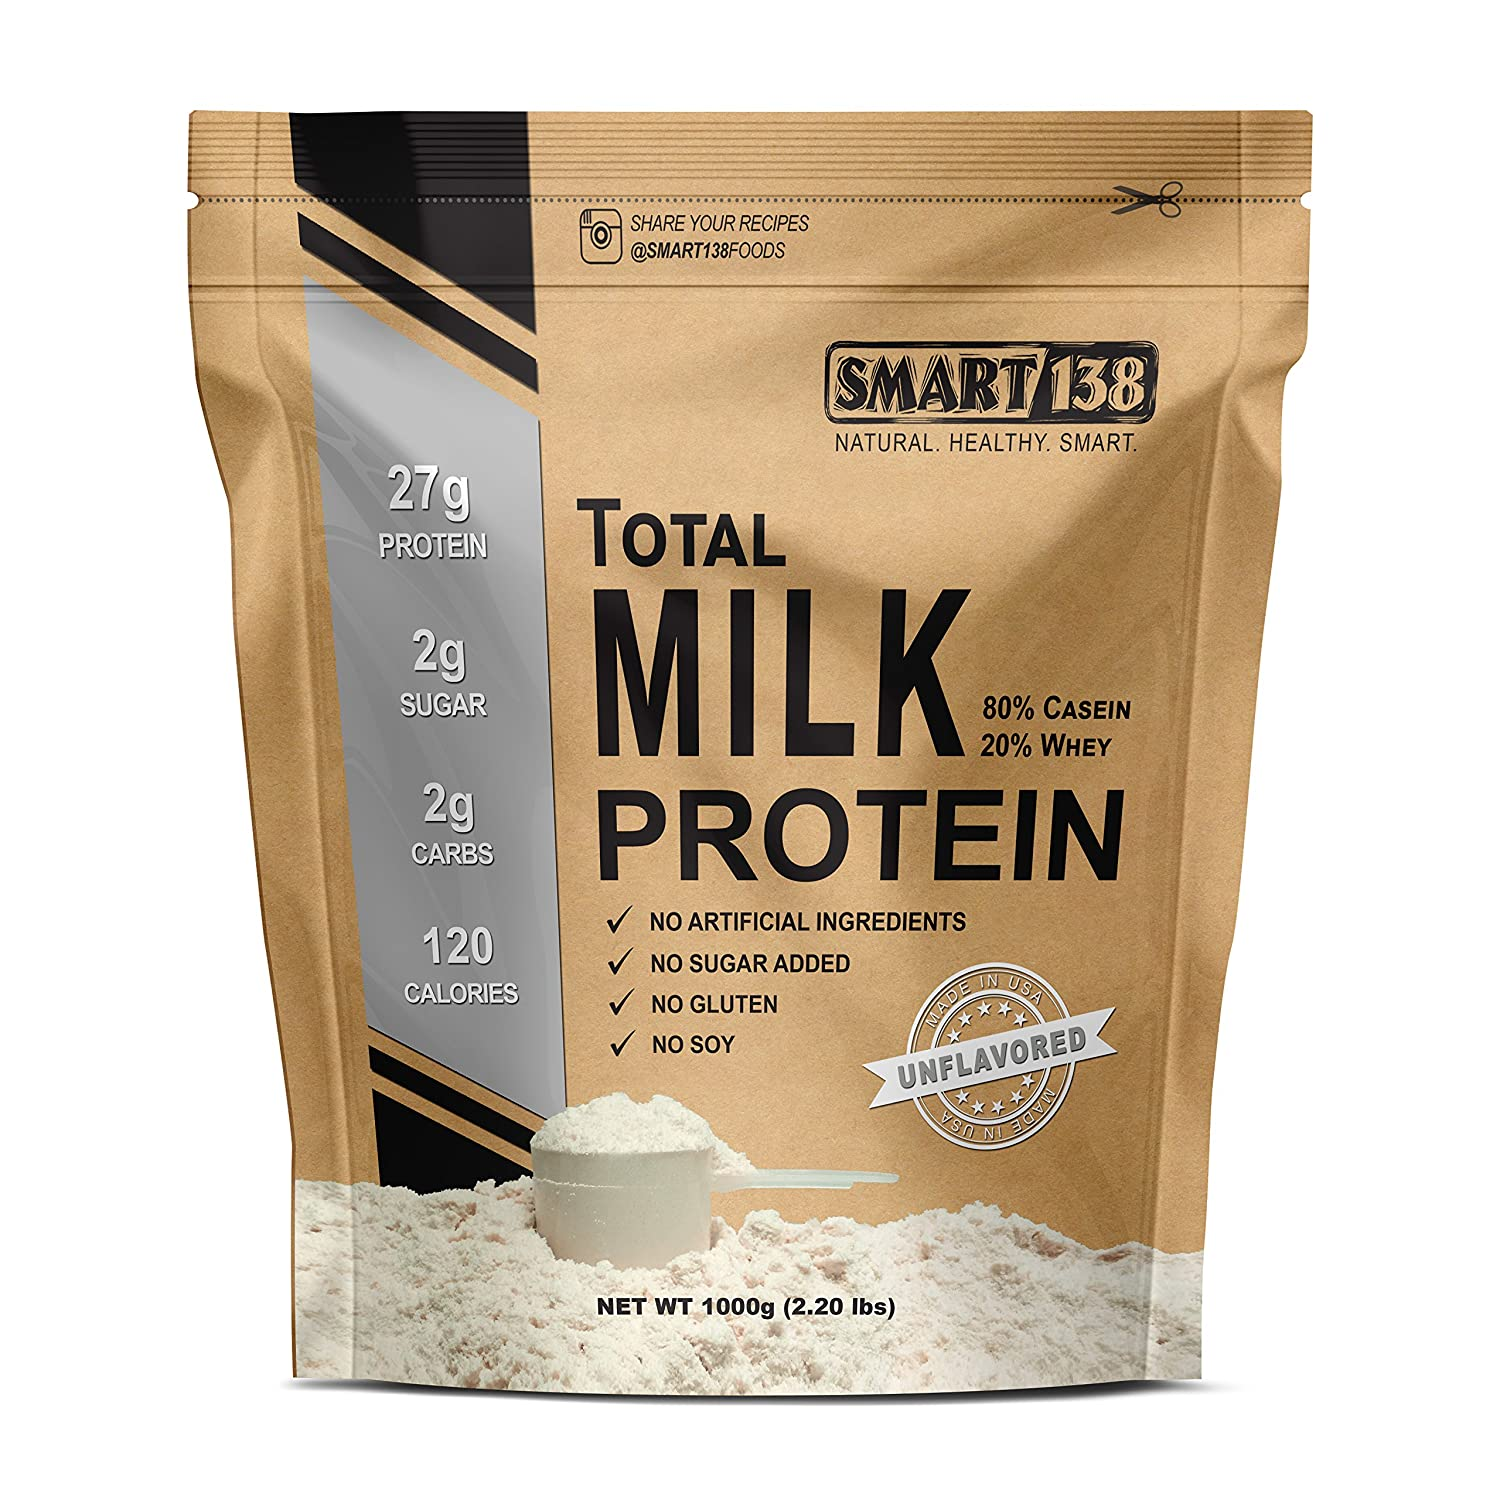 Total Milk Protein 80 Casein 20 Whey Gluten-Free, Soy-Free, Non-GMO, USA, Keto Low Carb, Natural BCAAs 1000g 2.2lbs, Unflavored